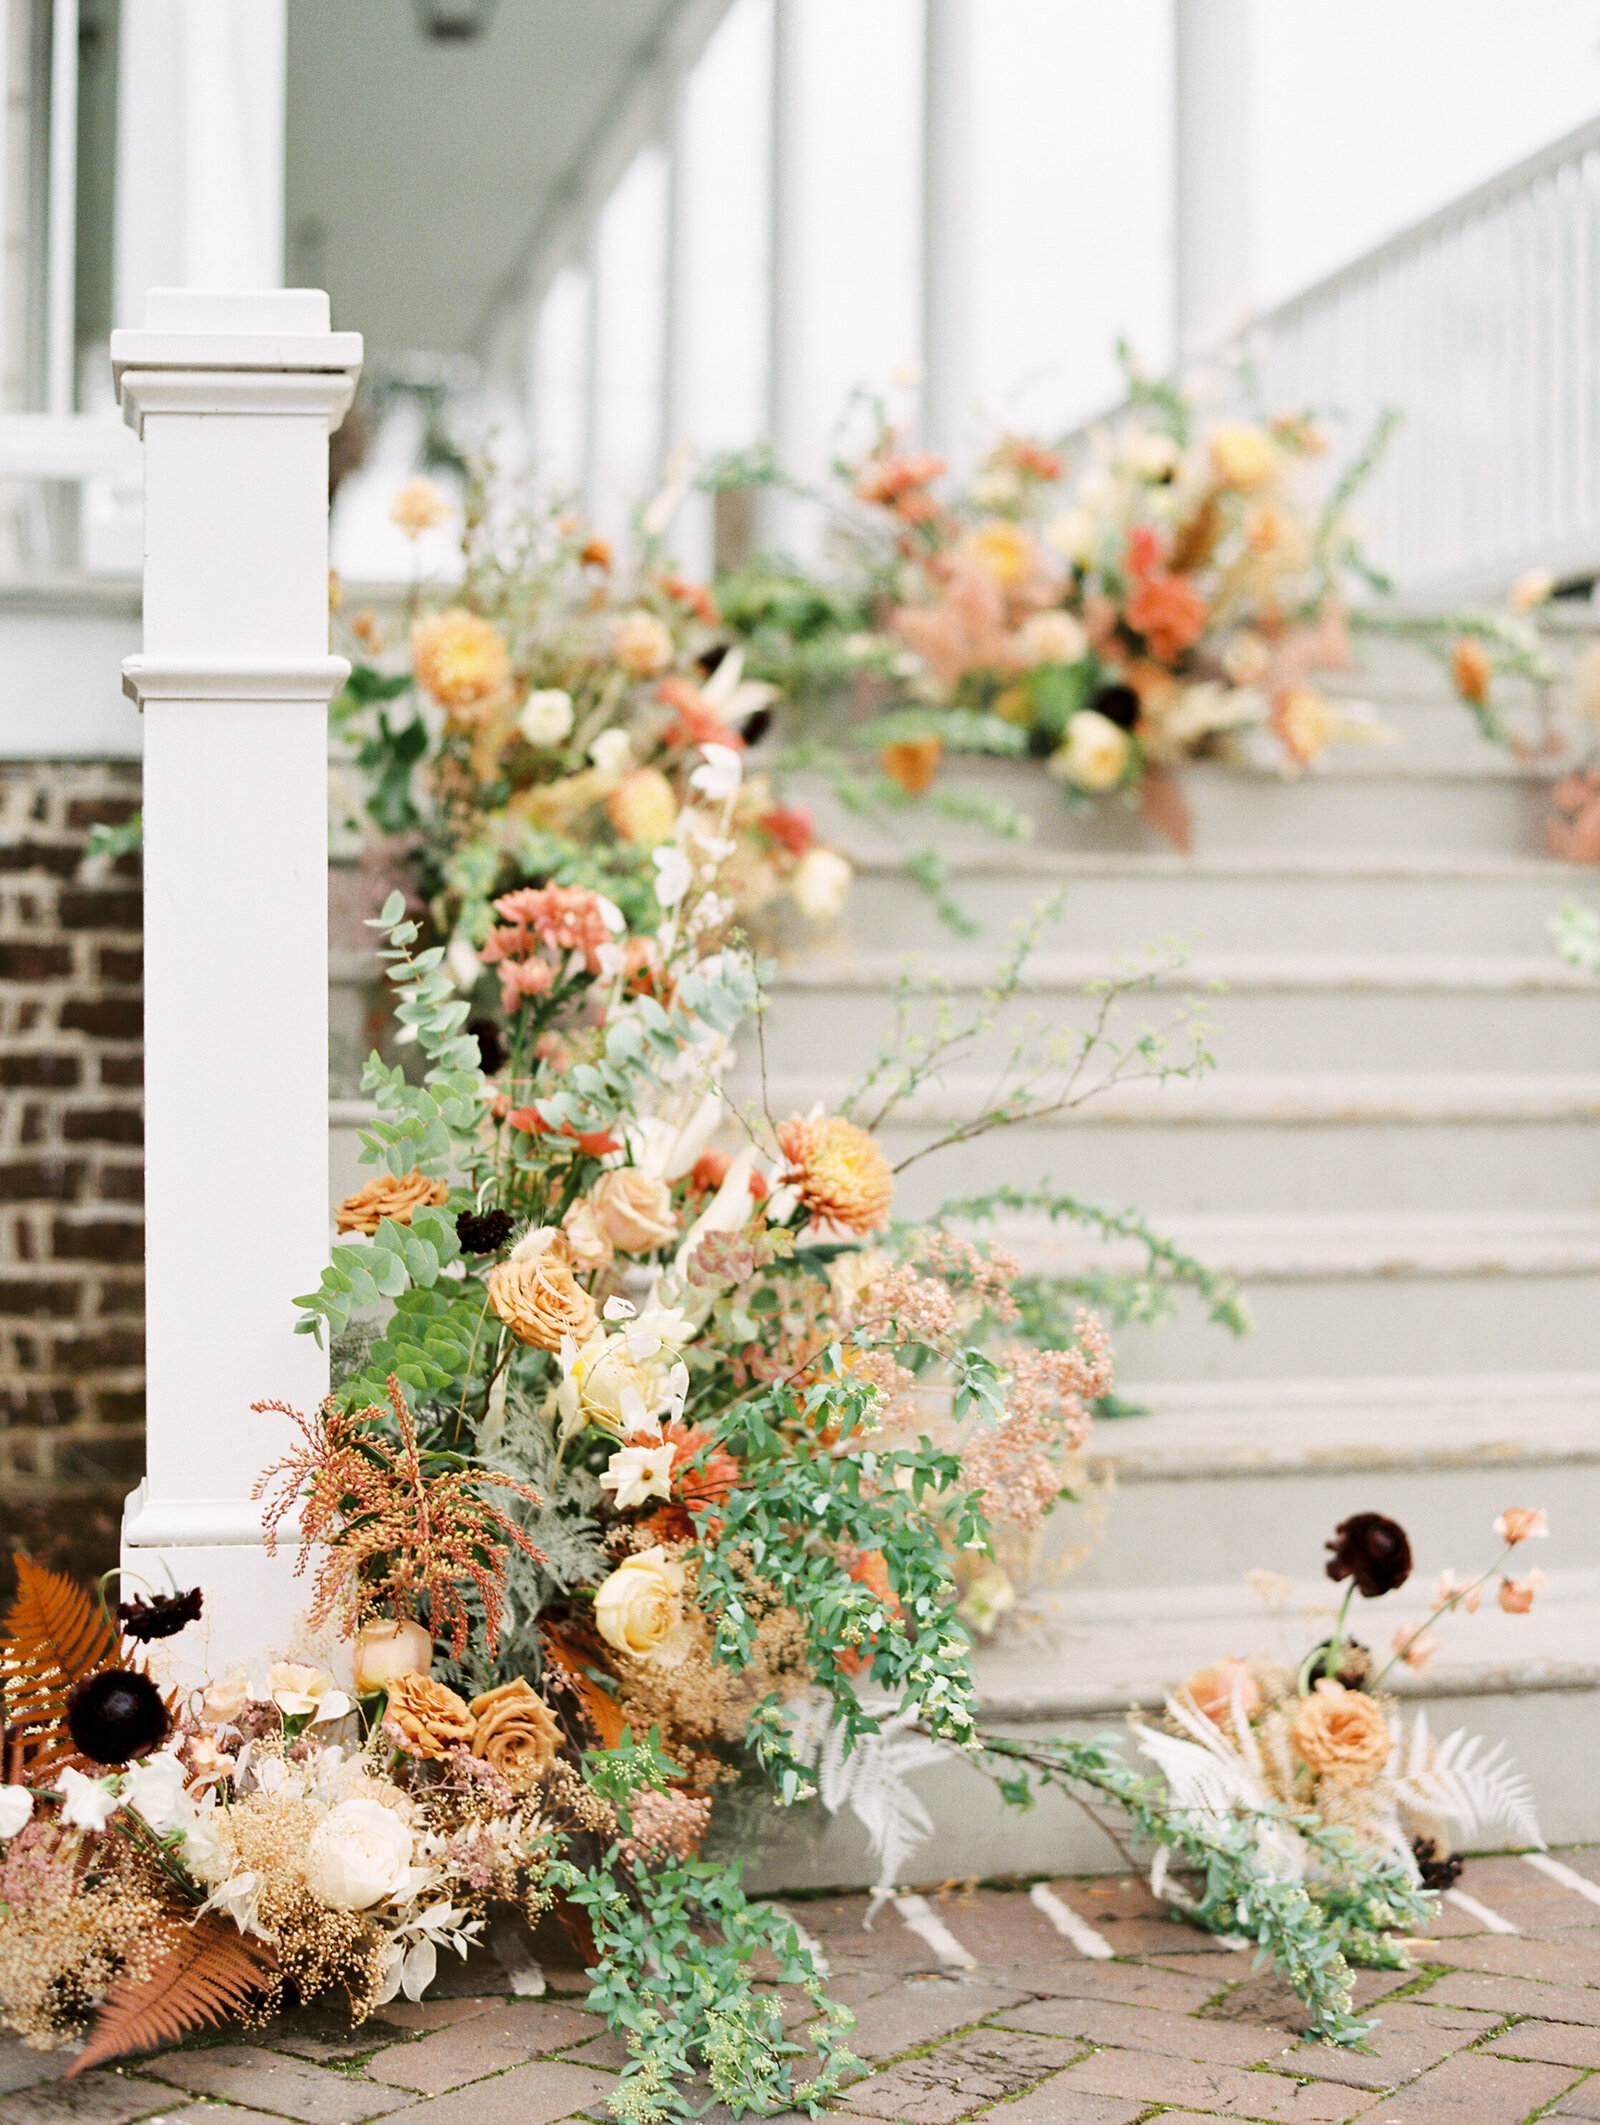 floral arrangement outside on the steps at the gadsden house in charleston south carolina